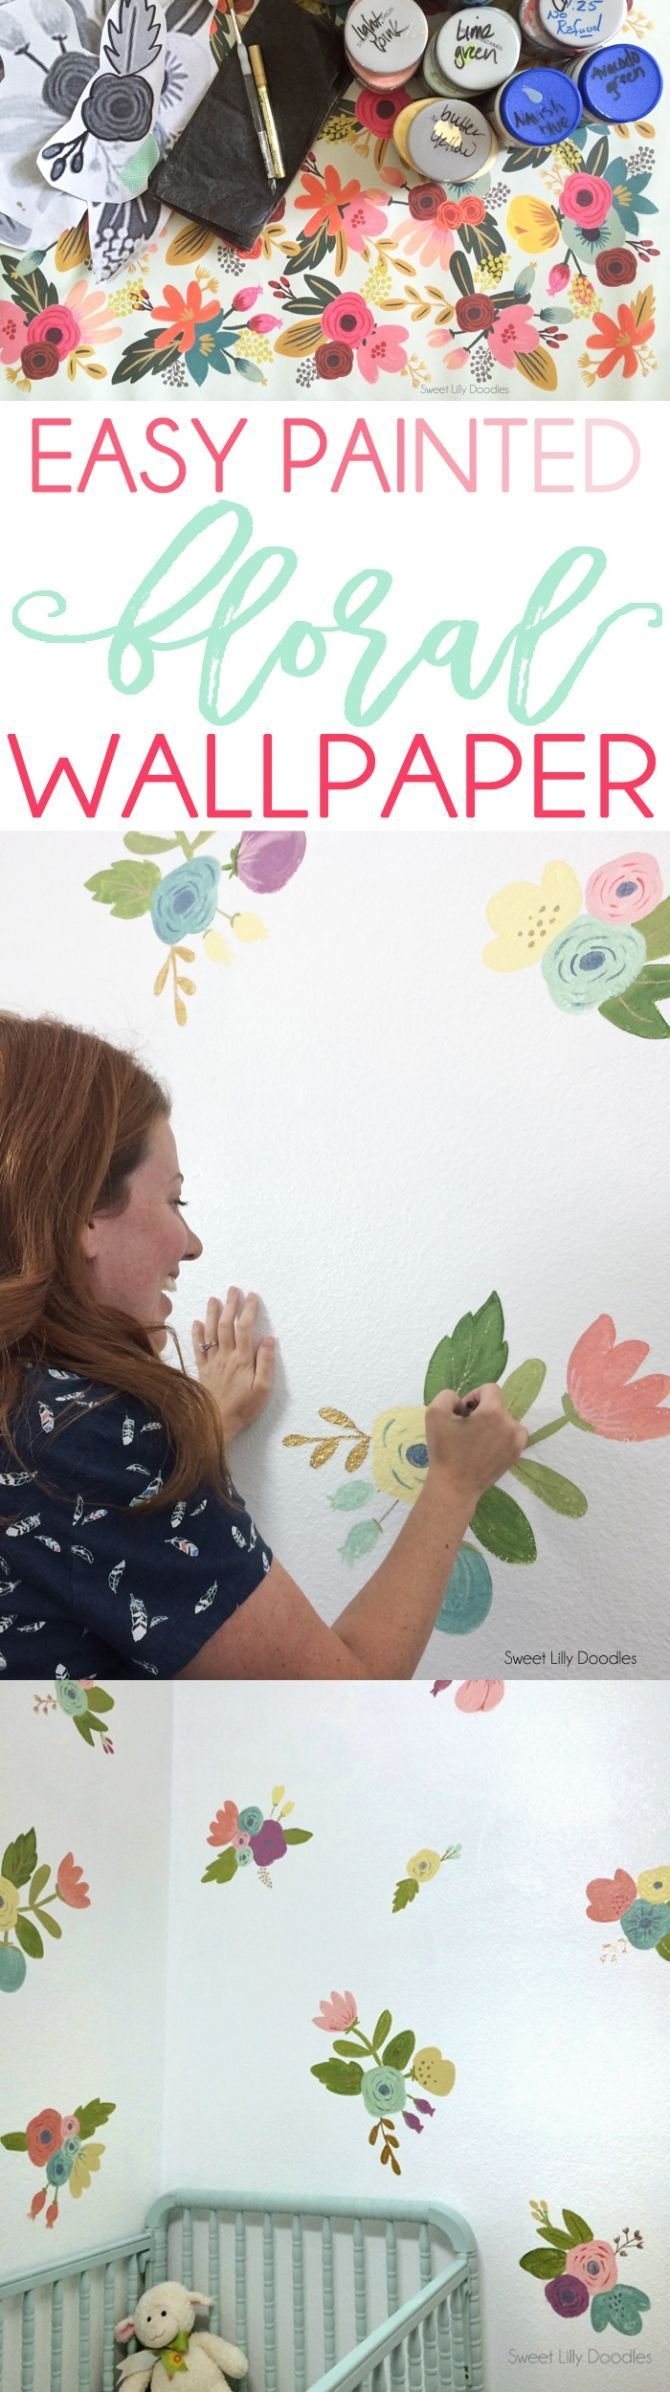 """Easy Floral Painted Faux Wallpaper Tutorial via <a href=""""http://sweetlillydoodles.etsy.com"""" rel=""""nofollow"""" target=""""_blank"""">sweetlillydoodles...</a>"""